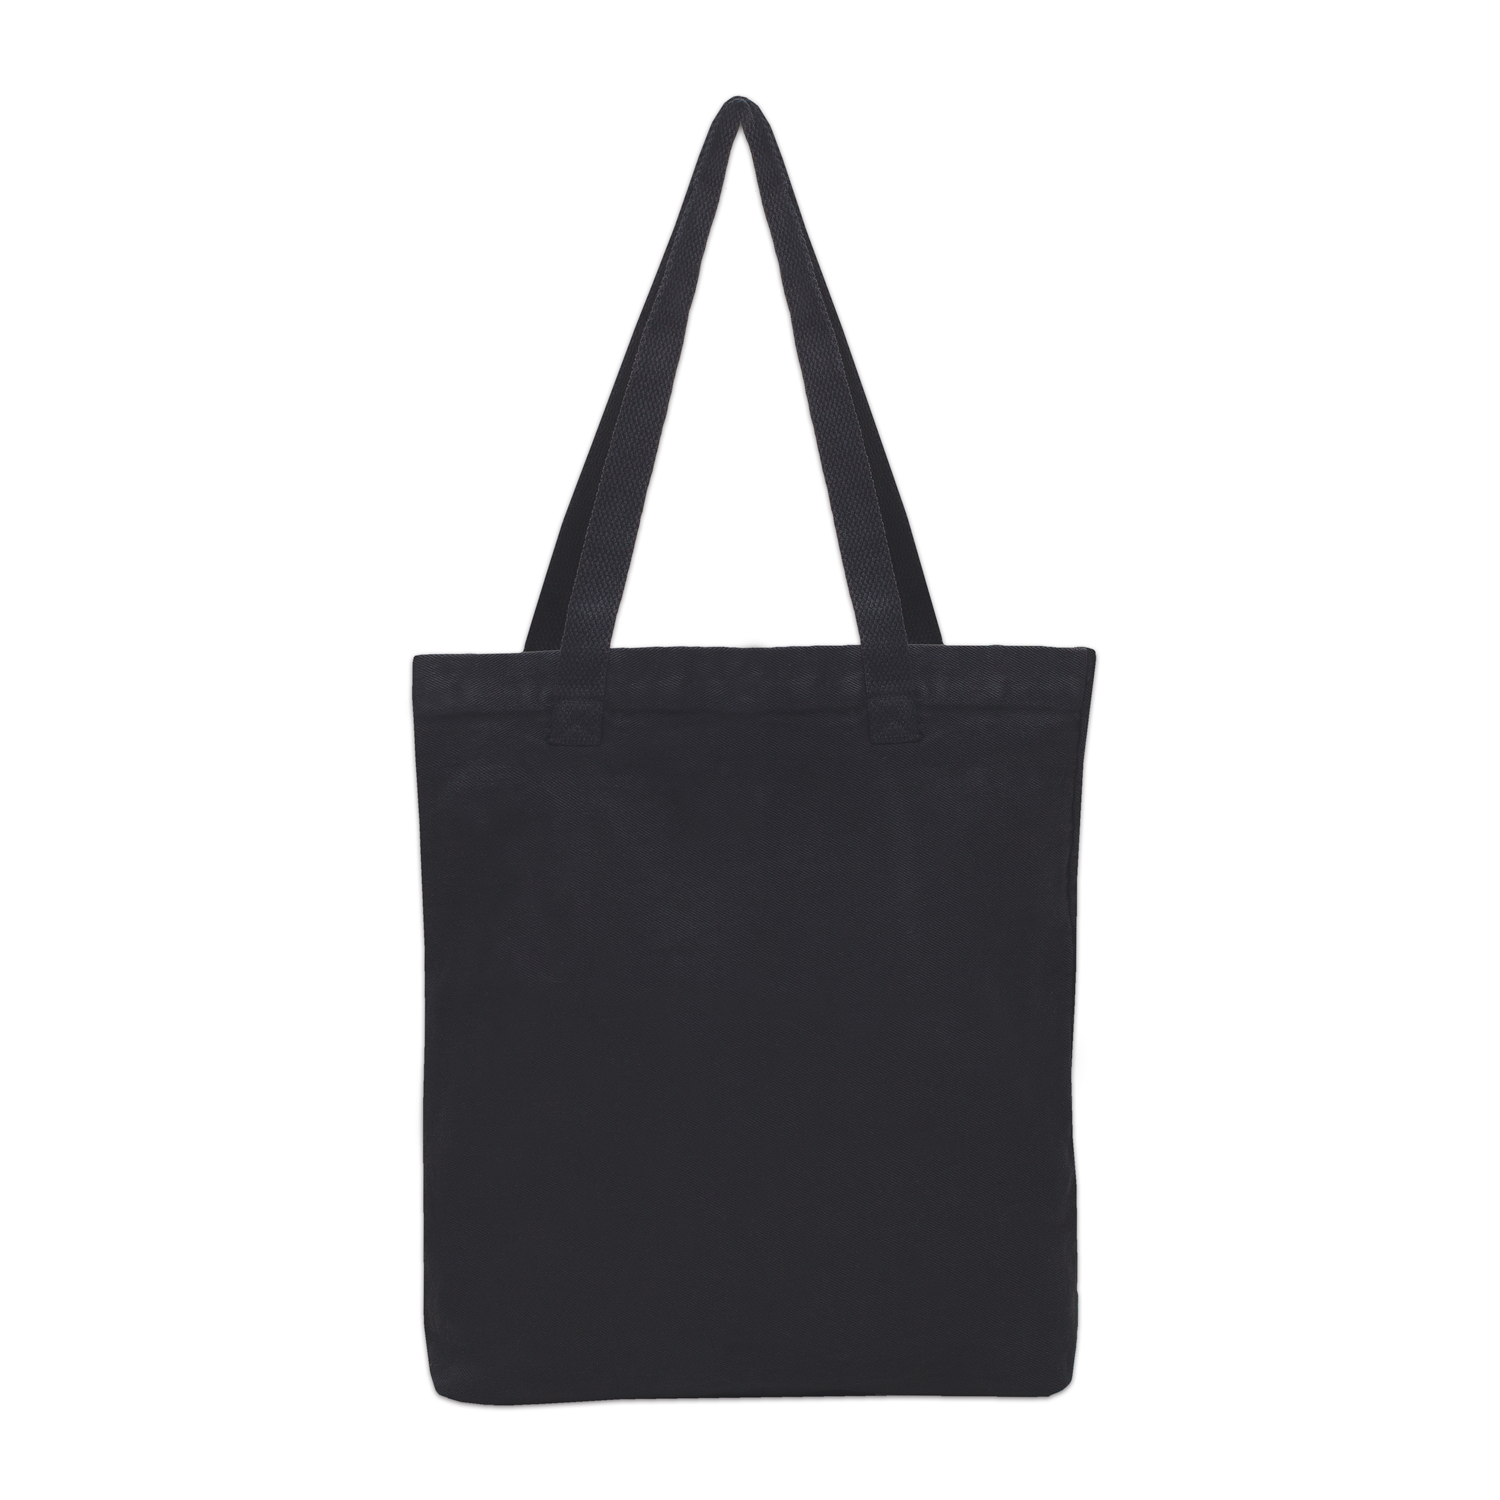 OSCARS EMBROIDERED CANVAS TOTE BAG.